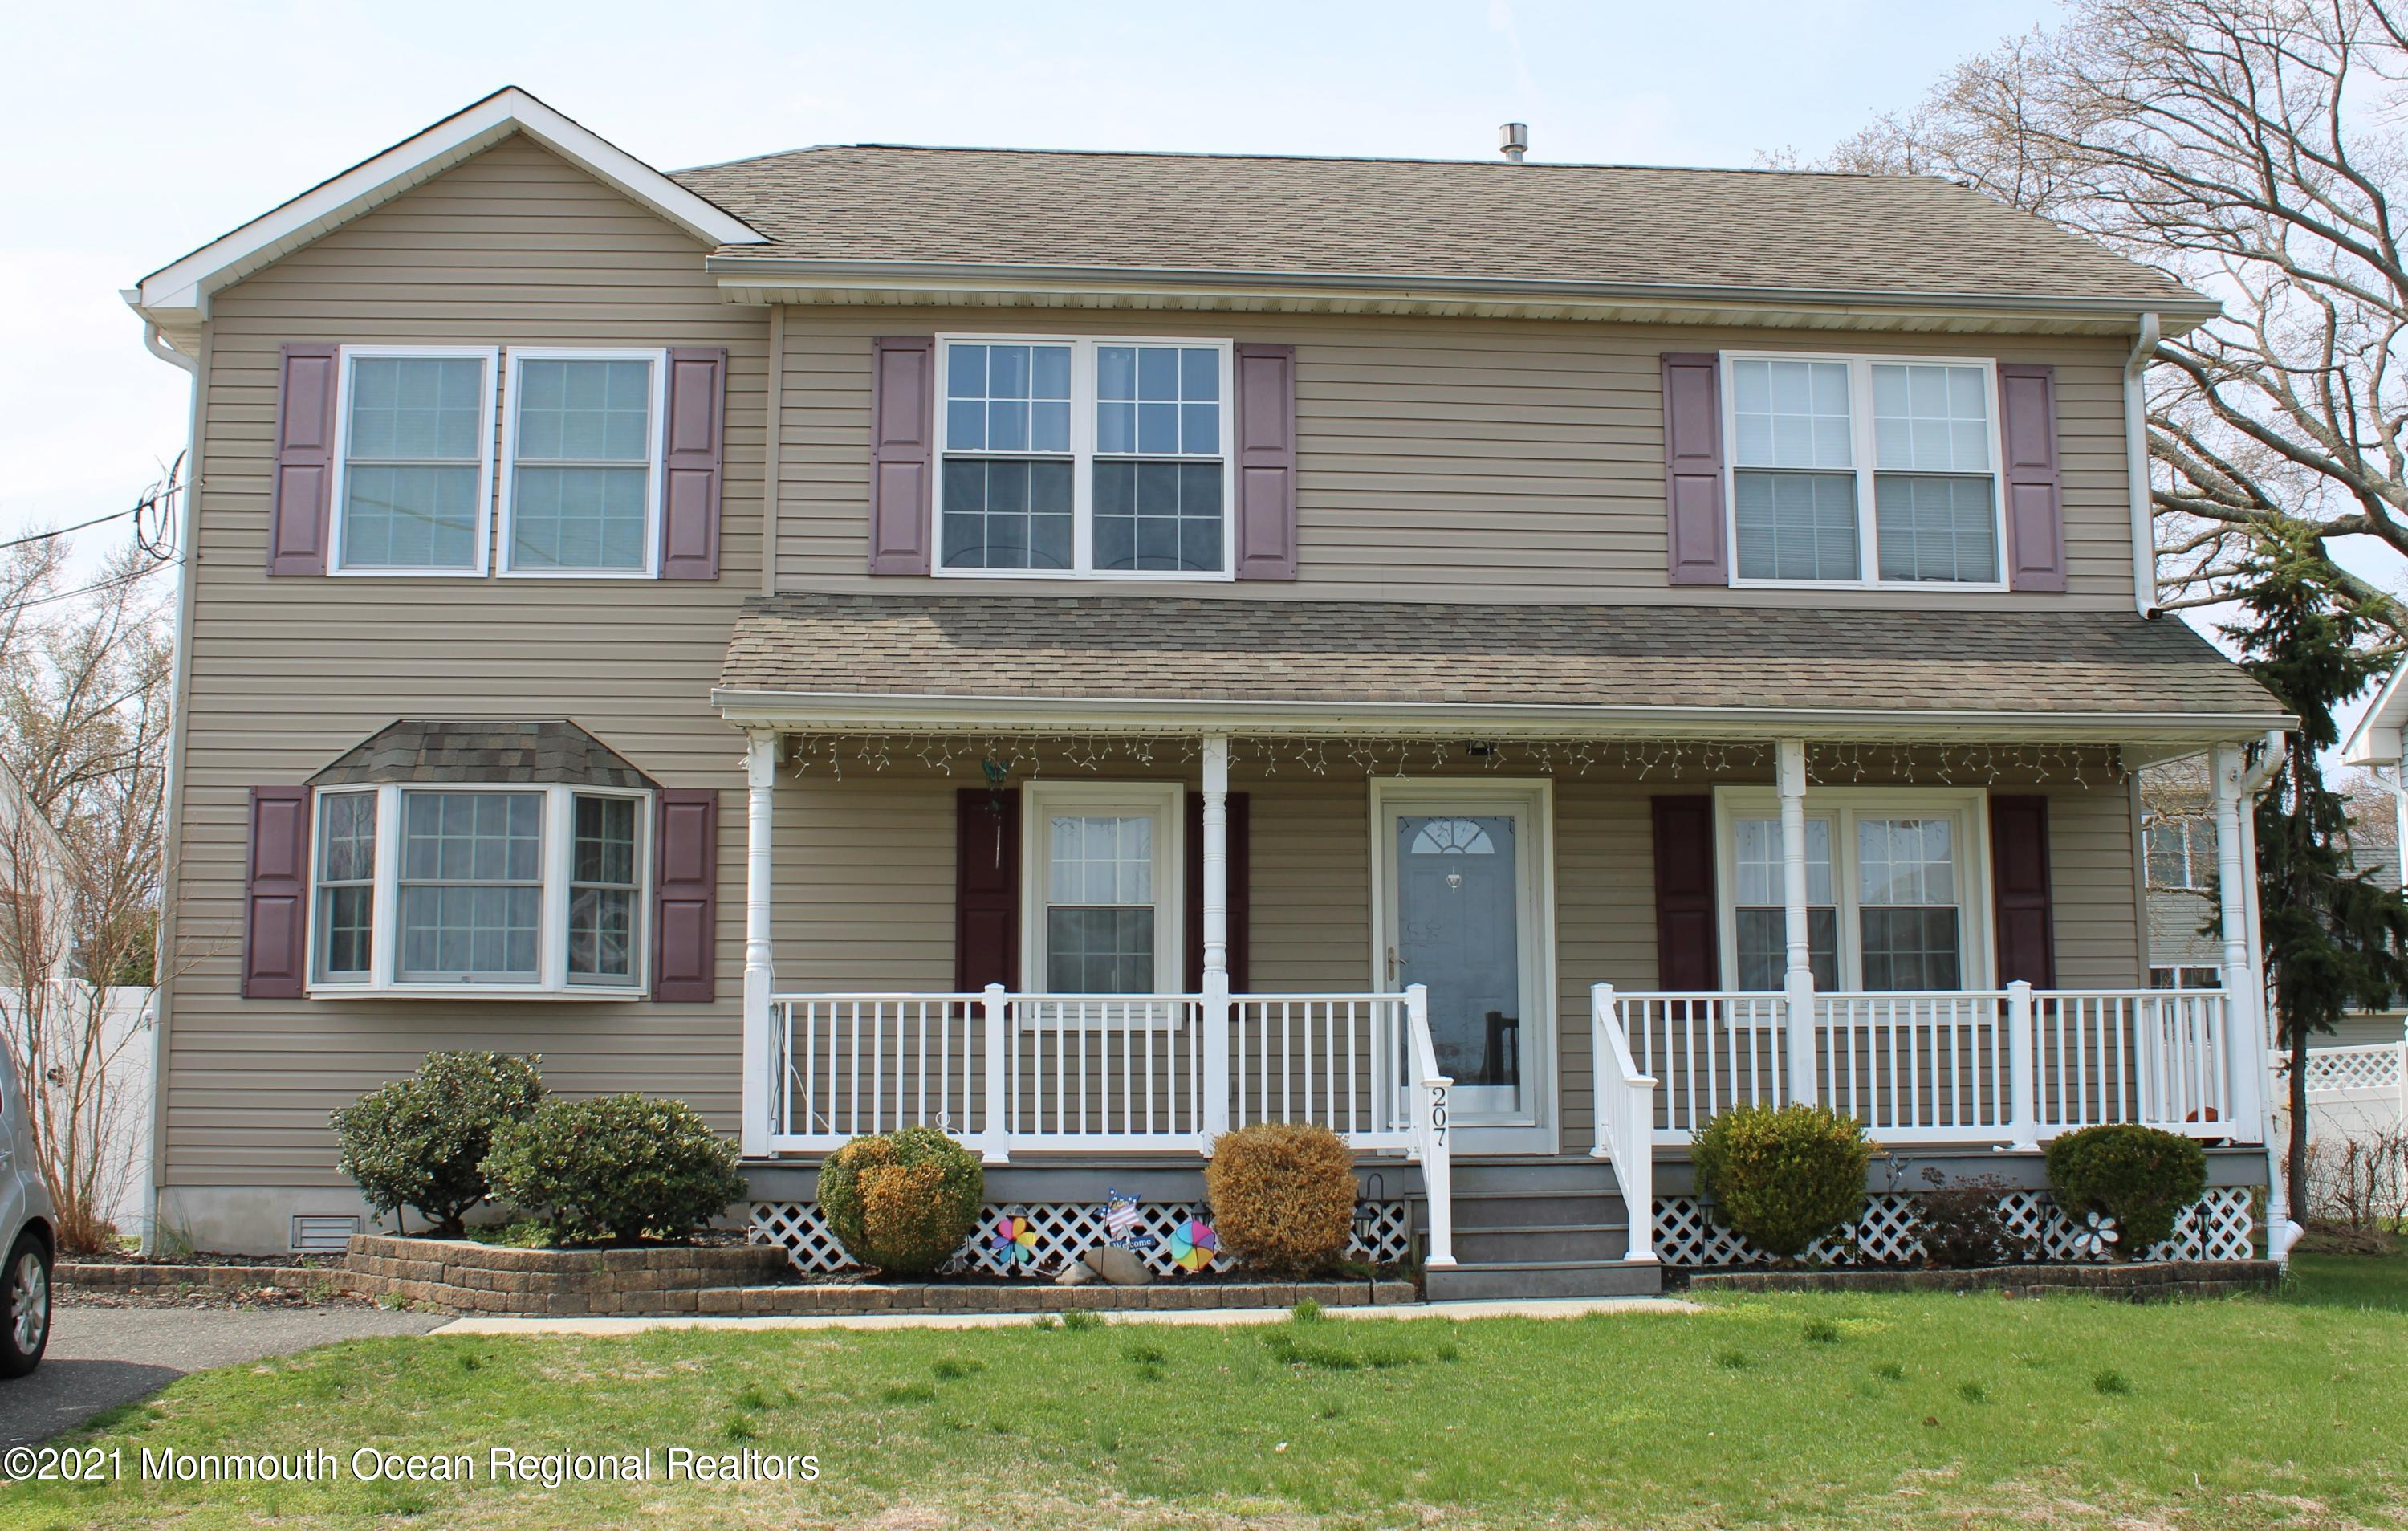 207 Ash Street, Union Beach, New Jersey 07735, 4 Bedrooms Bedrooms, ,3 BathroomsBathrooms,Single Family,For Sale,207 Ash Street,2,22110672